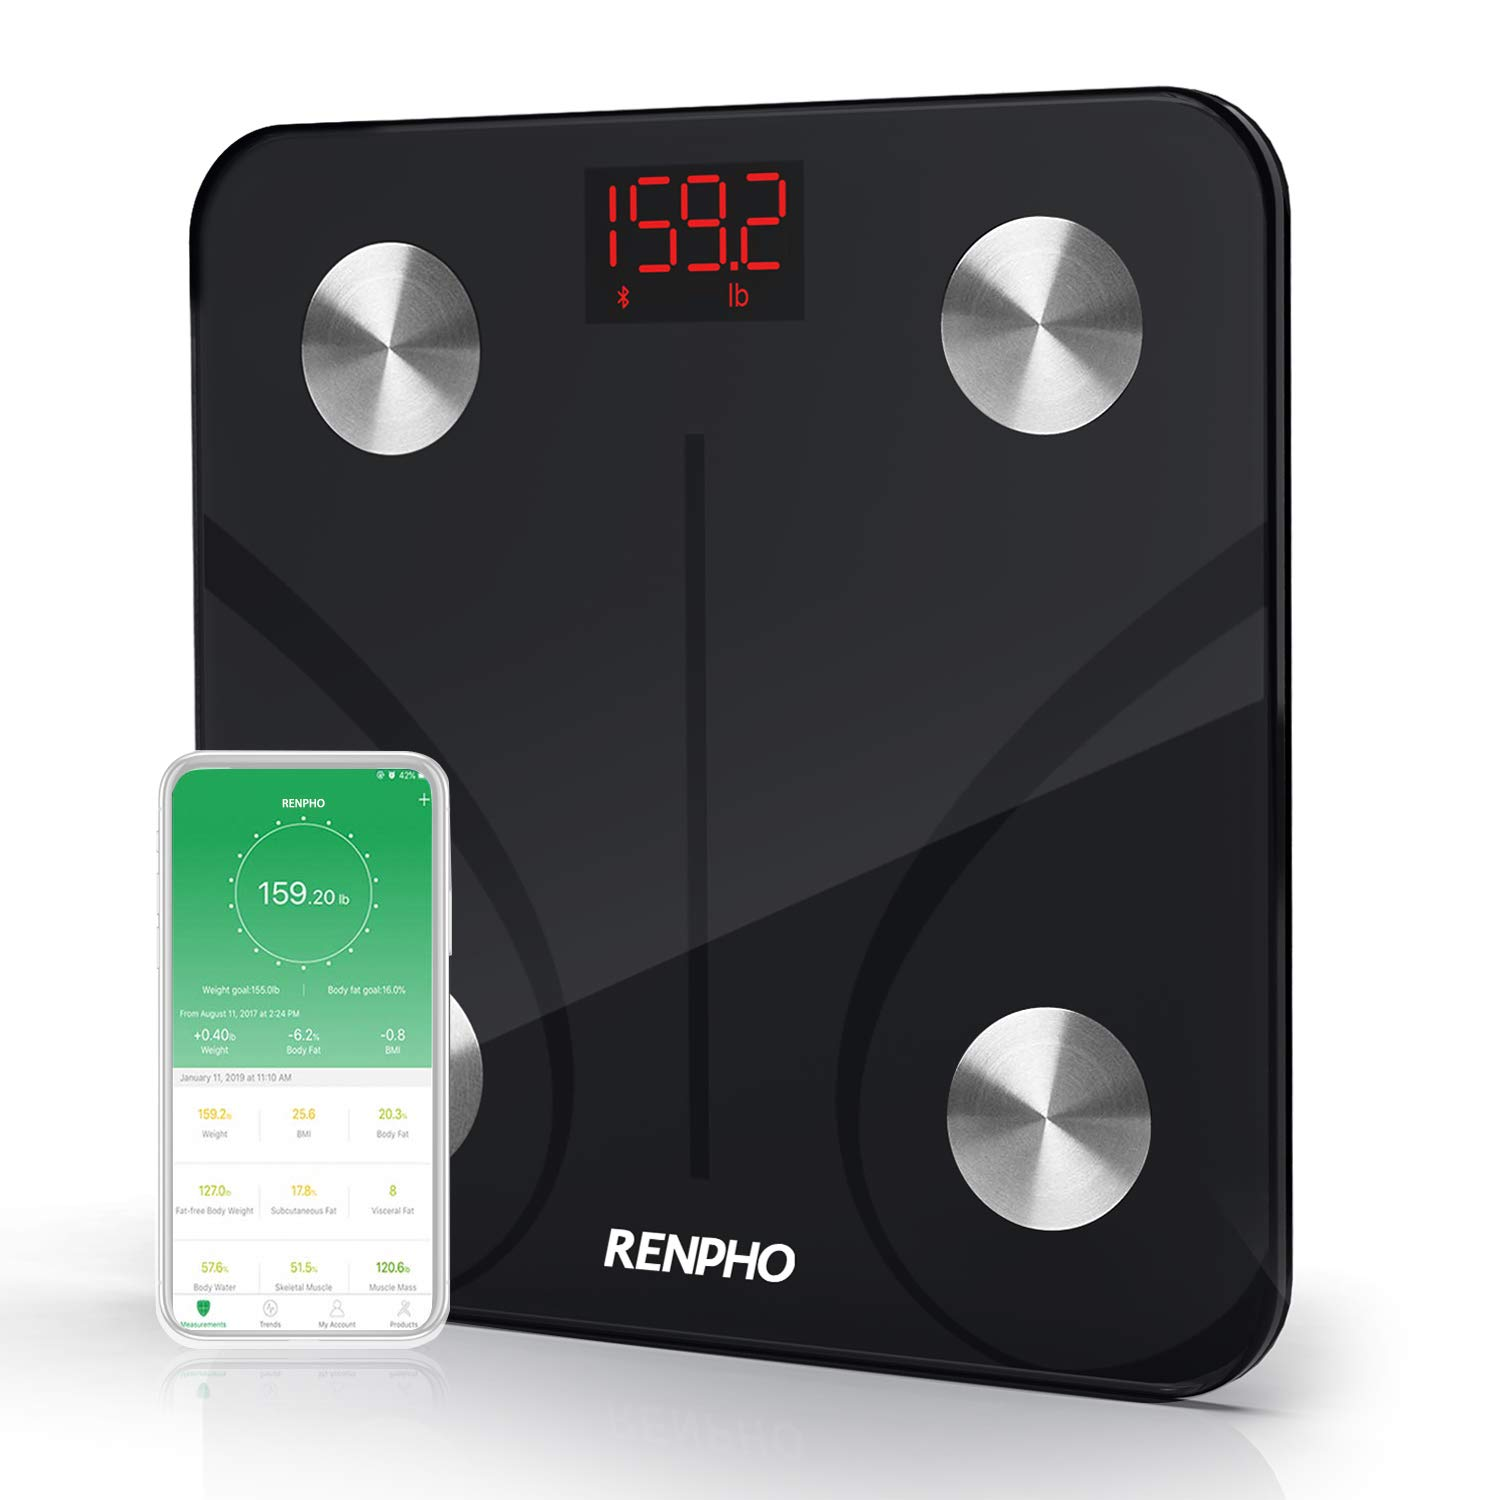 RENPHO Bluetooth Body Fat Scale, Smart Digital Bathroom Scale Wireless Weighing Body Composition Analyzer BMI Scale Health Monitor with Smartphone APP, Weight, Body Fat%, 396 lbs/180kg by RENPHO (Image #1)